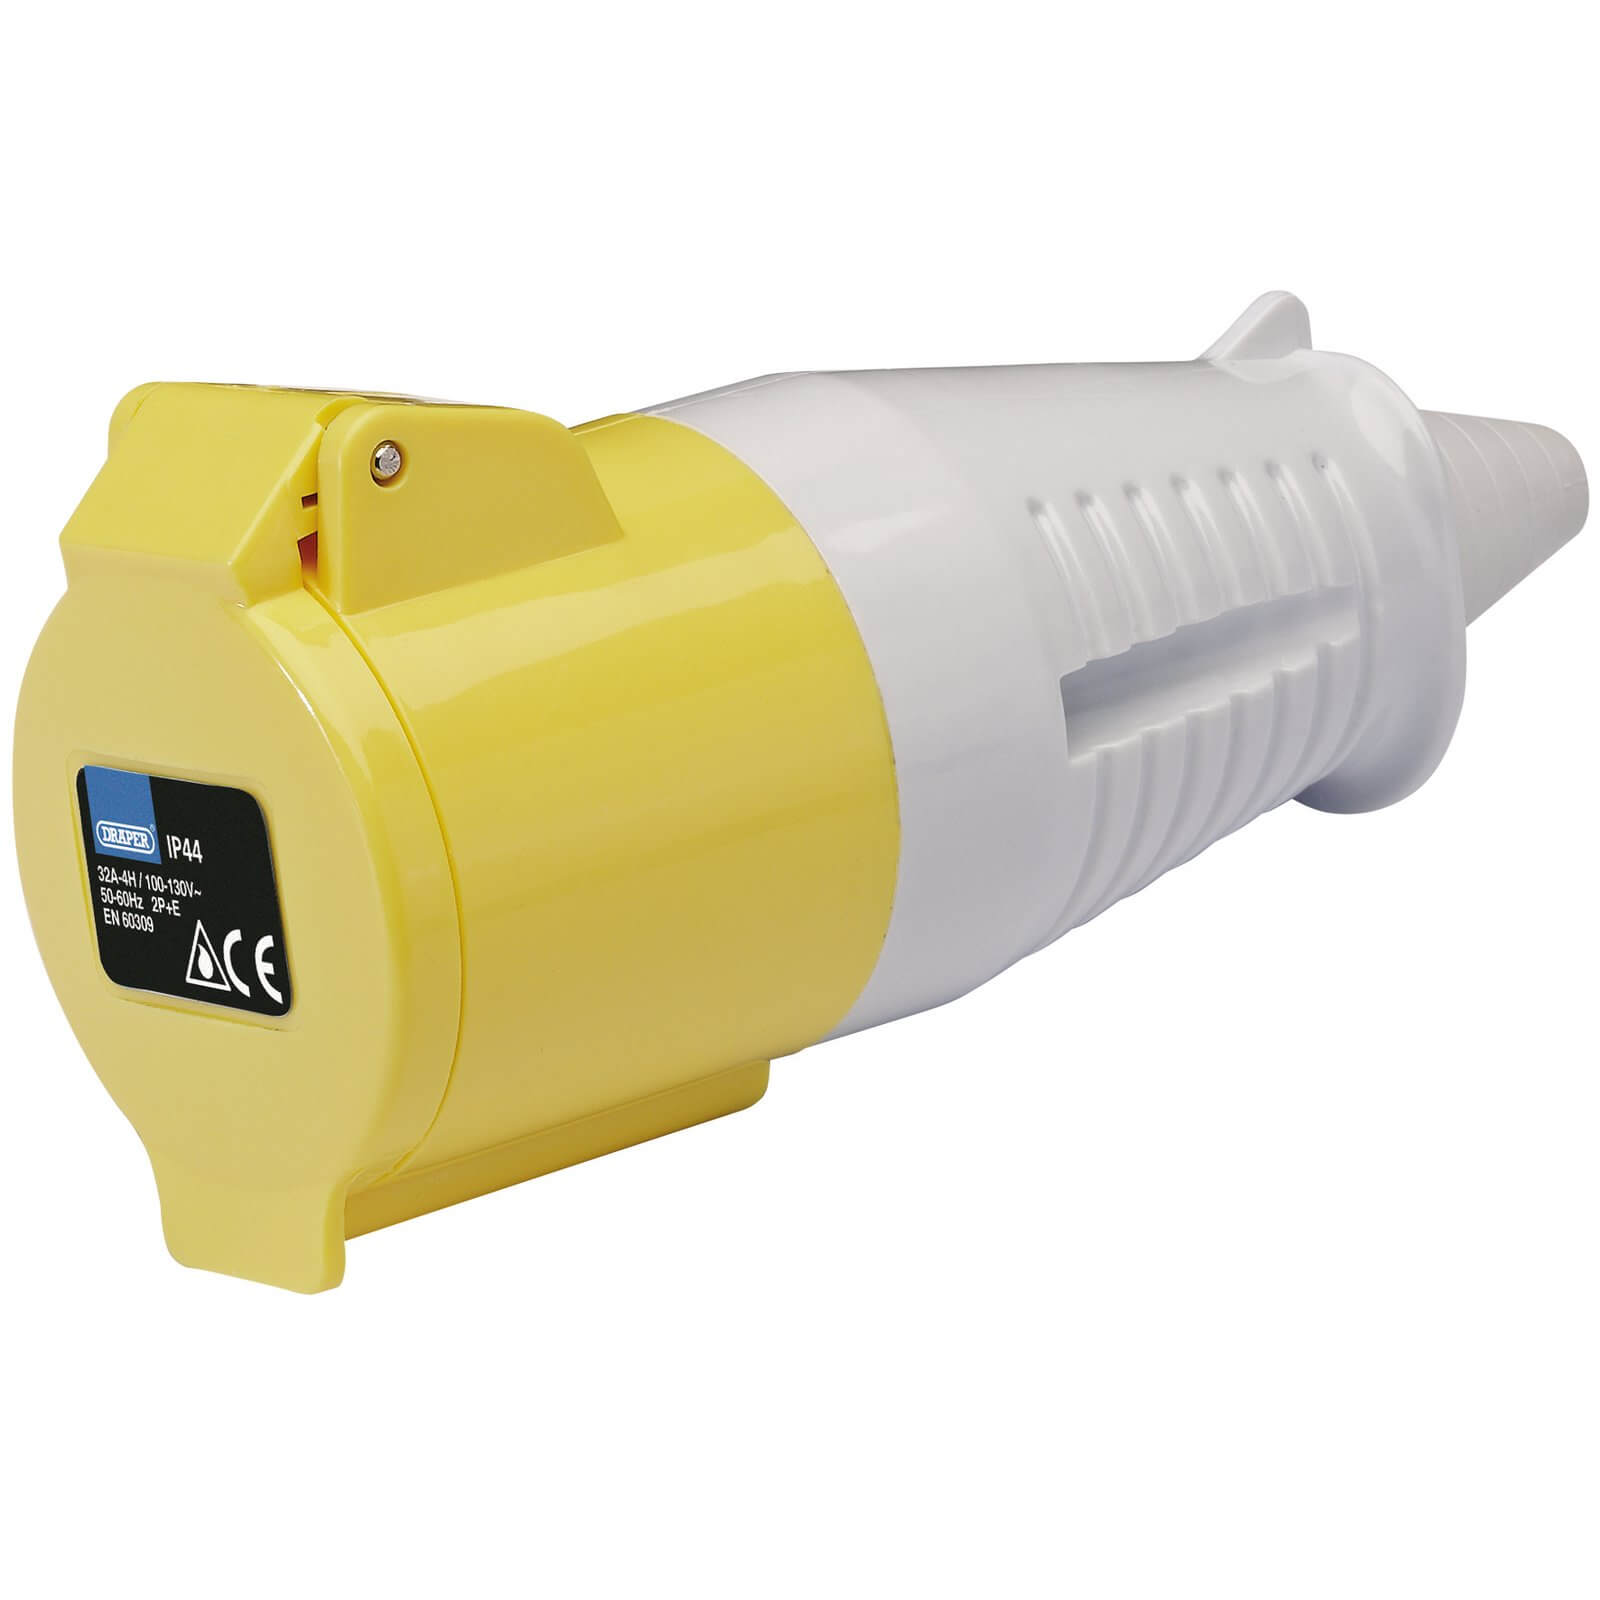 Draper Yellow Socket 32 amp 110v